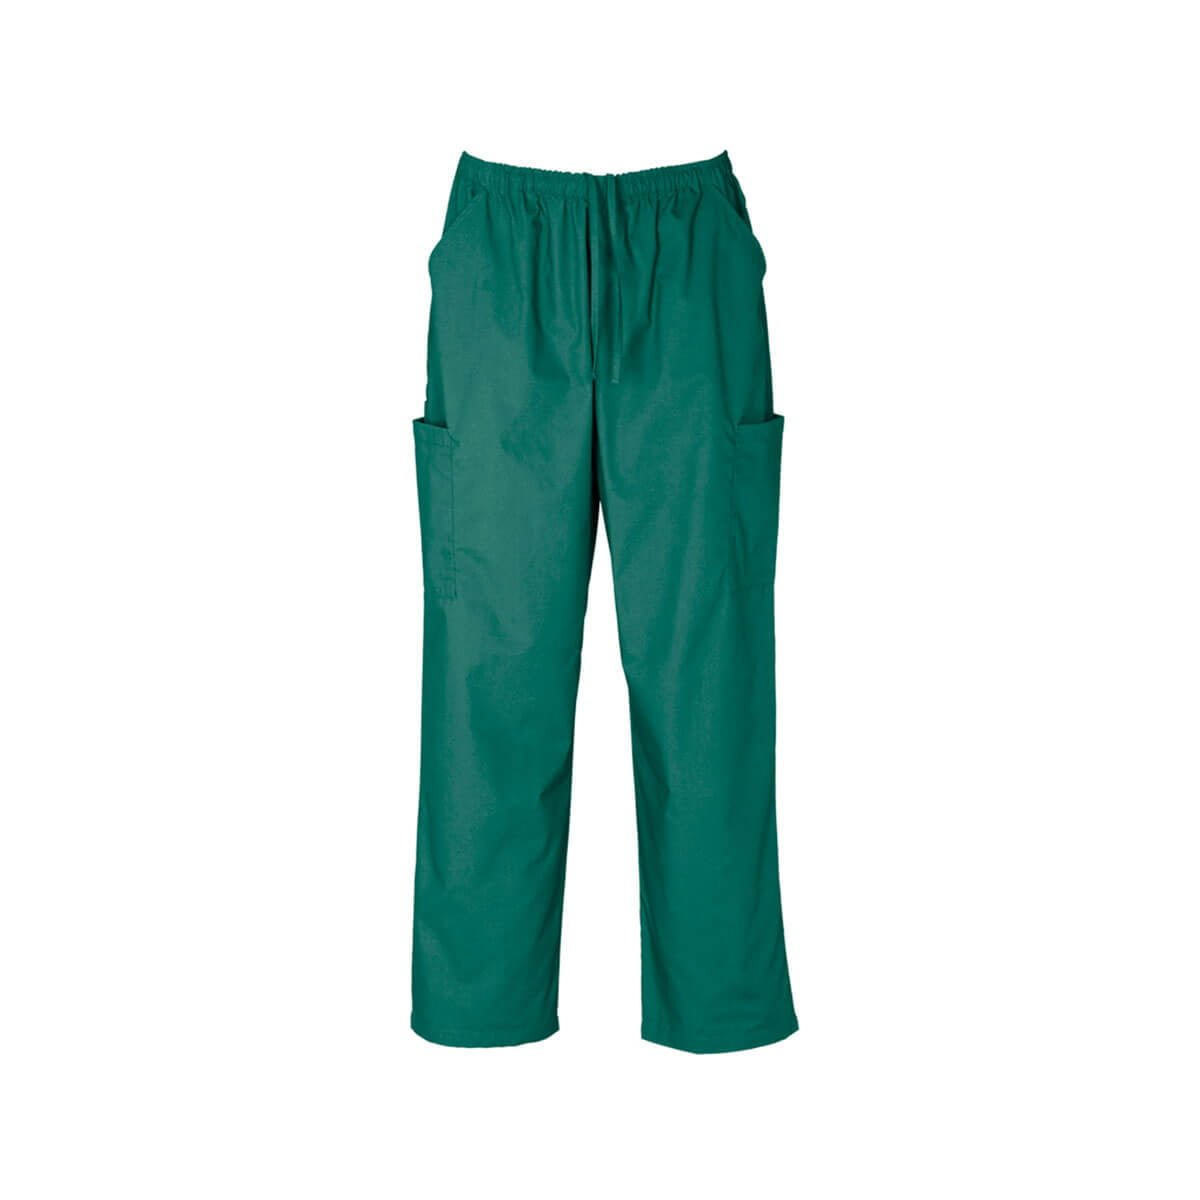 Unisex Classic Scrubs Cargo Pant-Hunter Green